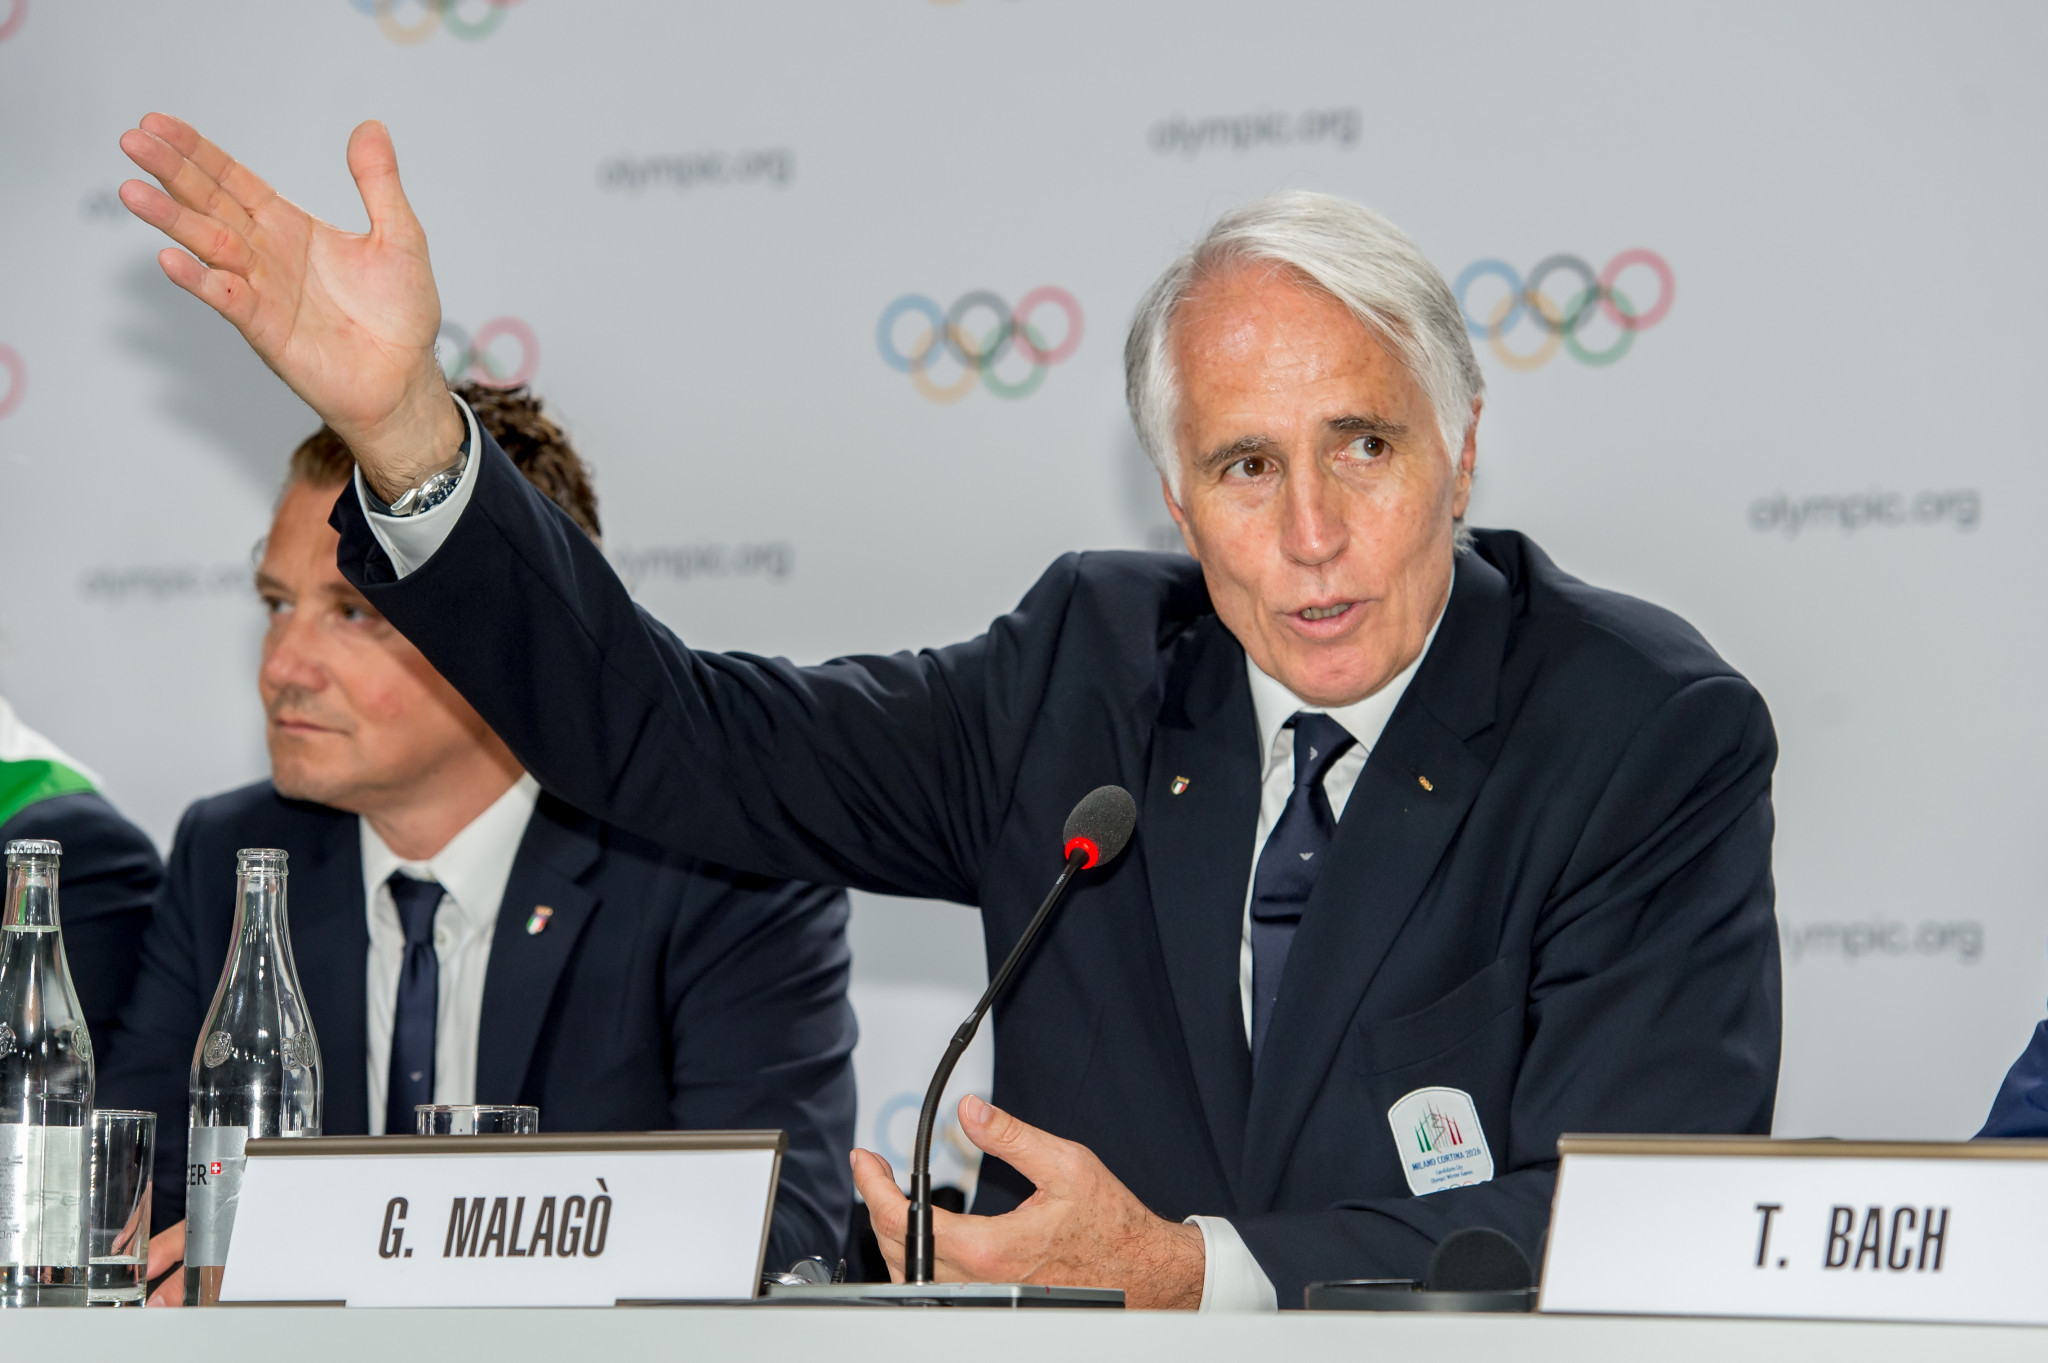 Giovanni Malagò has applauded the Italian Government's decision to appoint Valentina Vezzali ©Getty Images